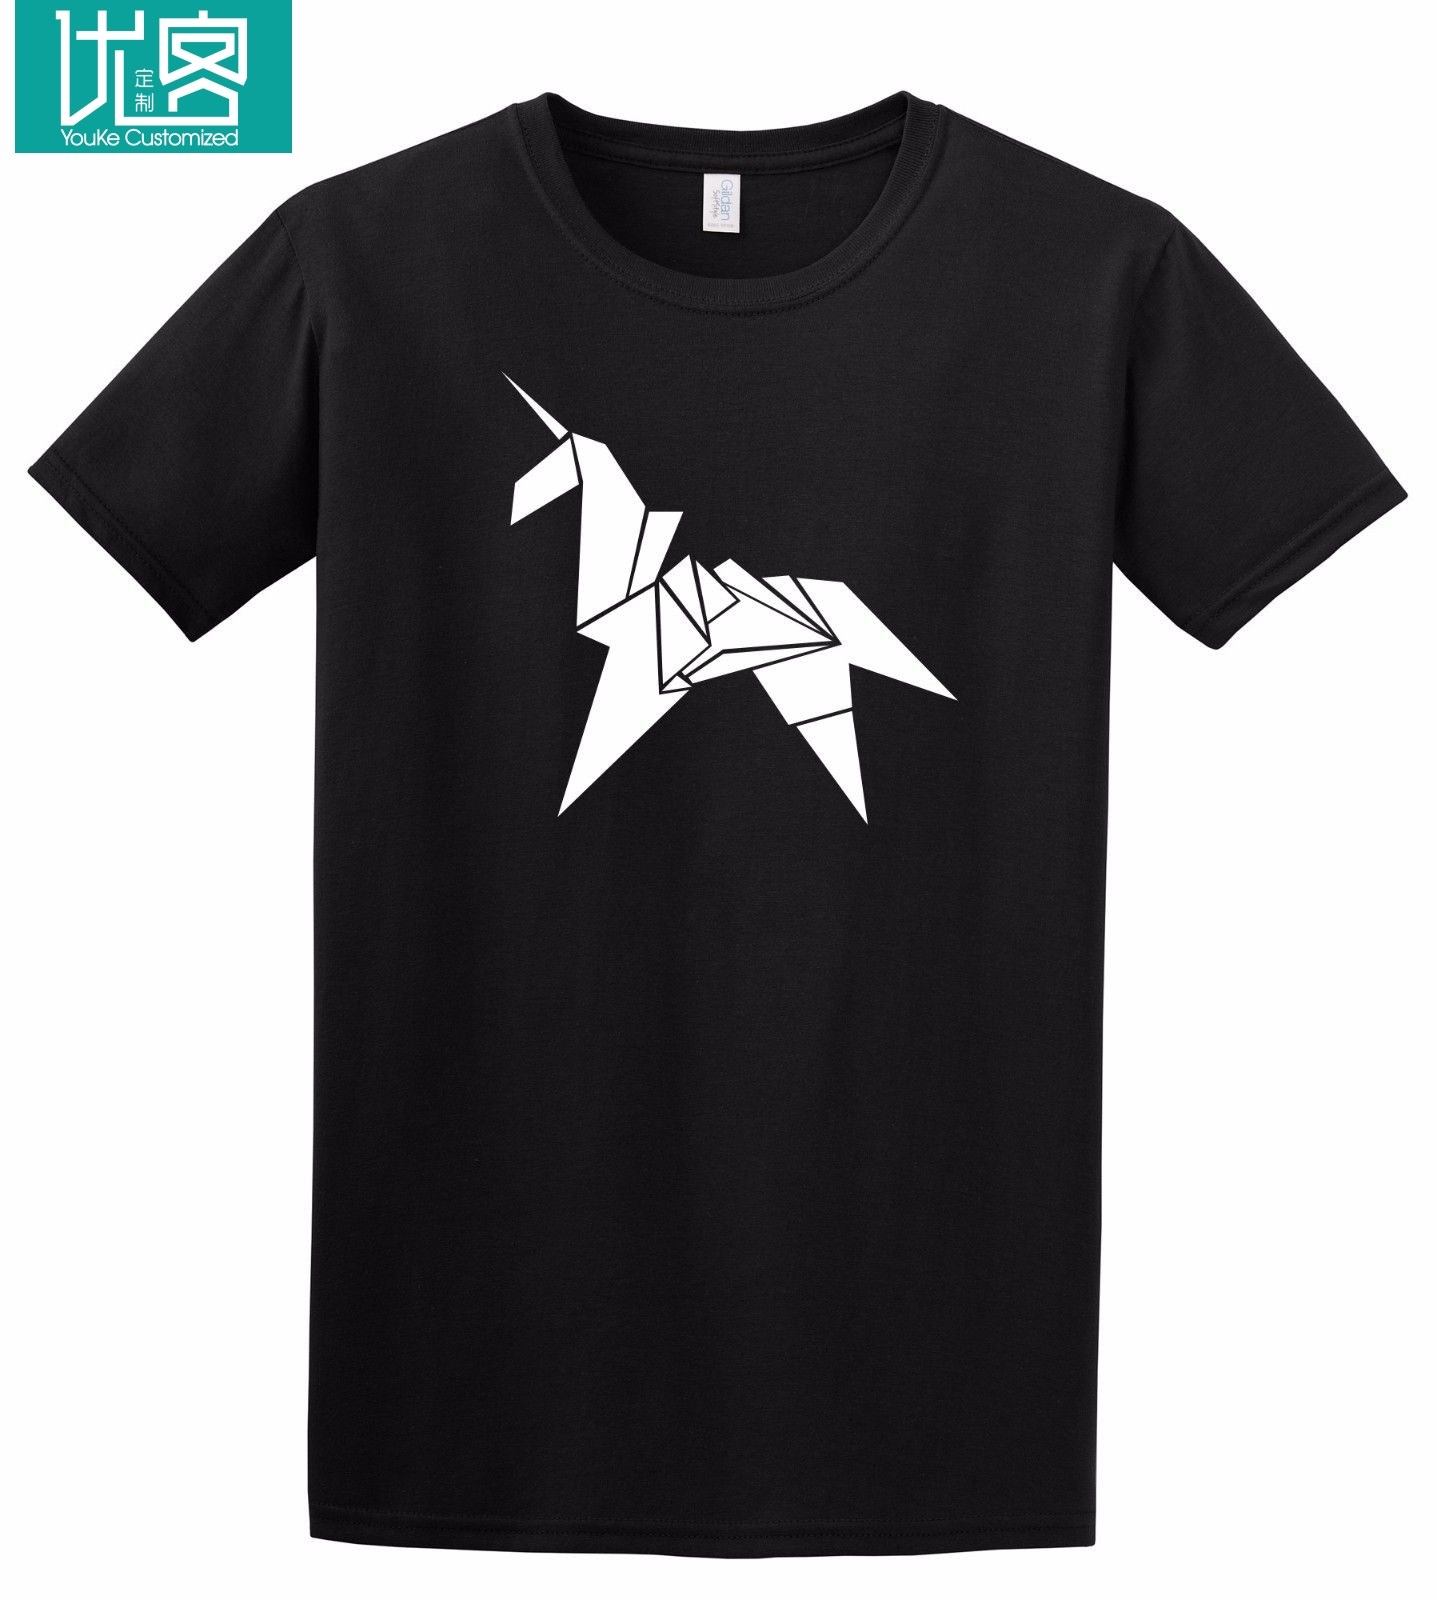 Origami Unicorn - Blade Runner Sci Fi Replicant Film Movie Inspired T-shirt Cool Casual pride tshirt men Unisex New Fashion image